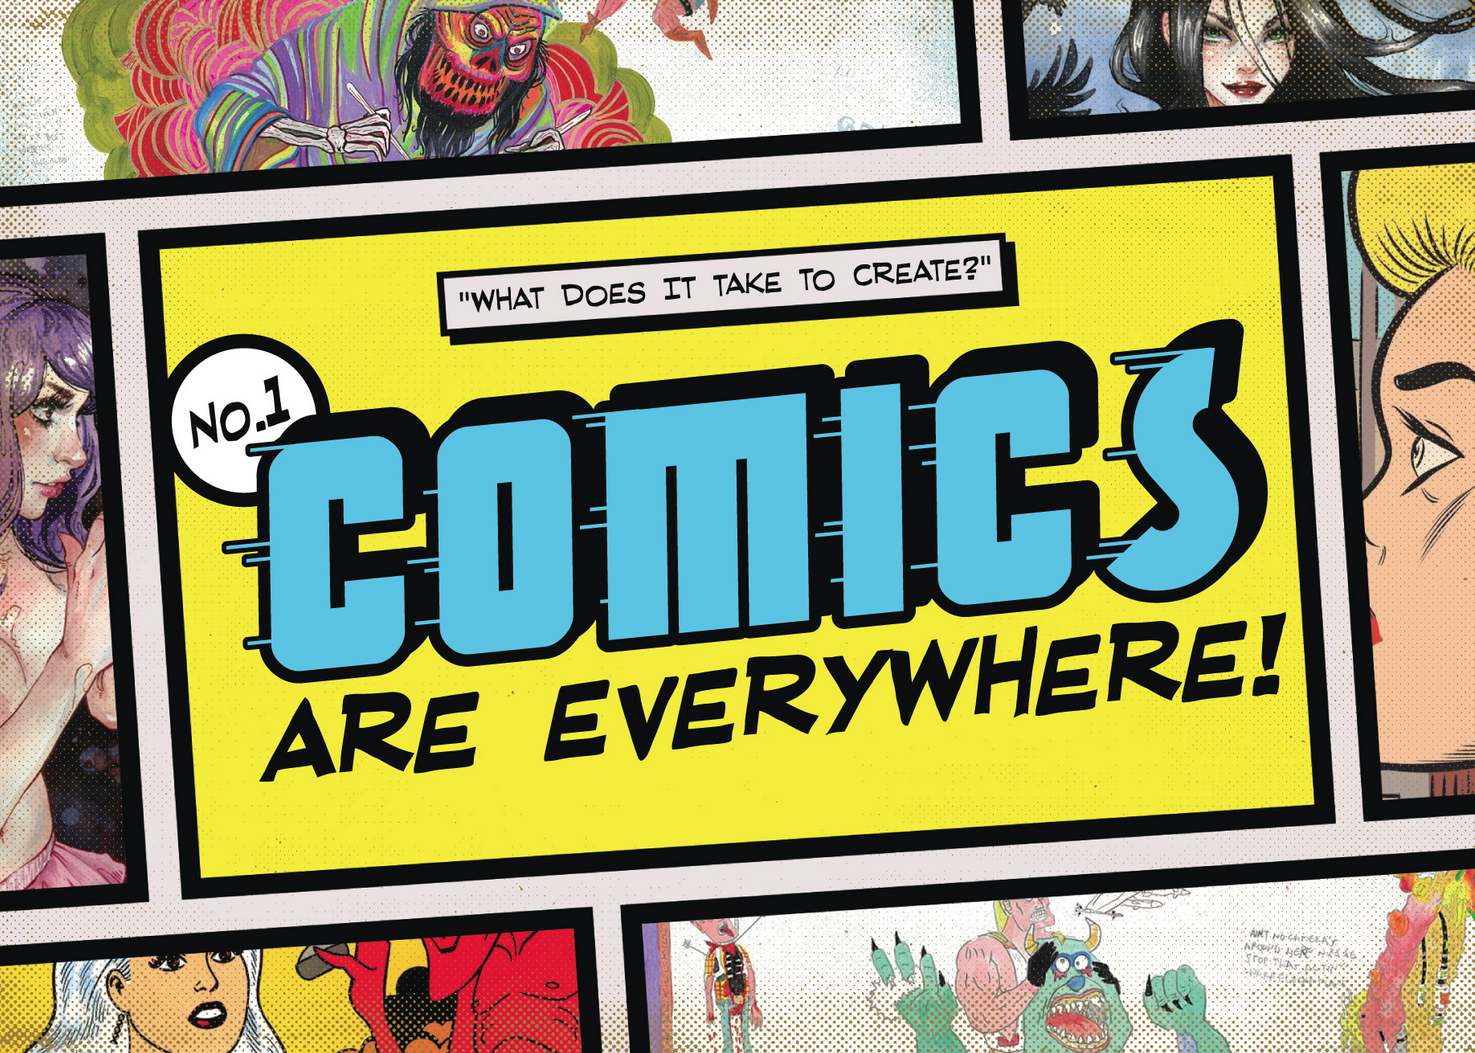 Comic strip stating What does it take to make create? Comics are everywhere.